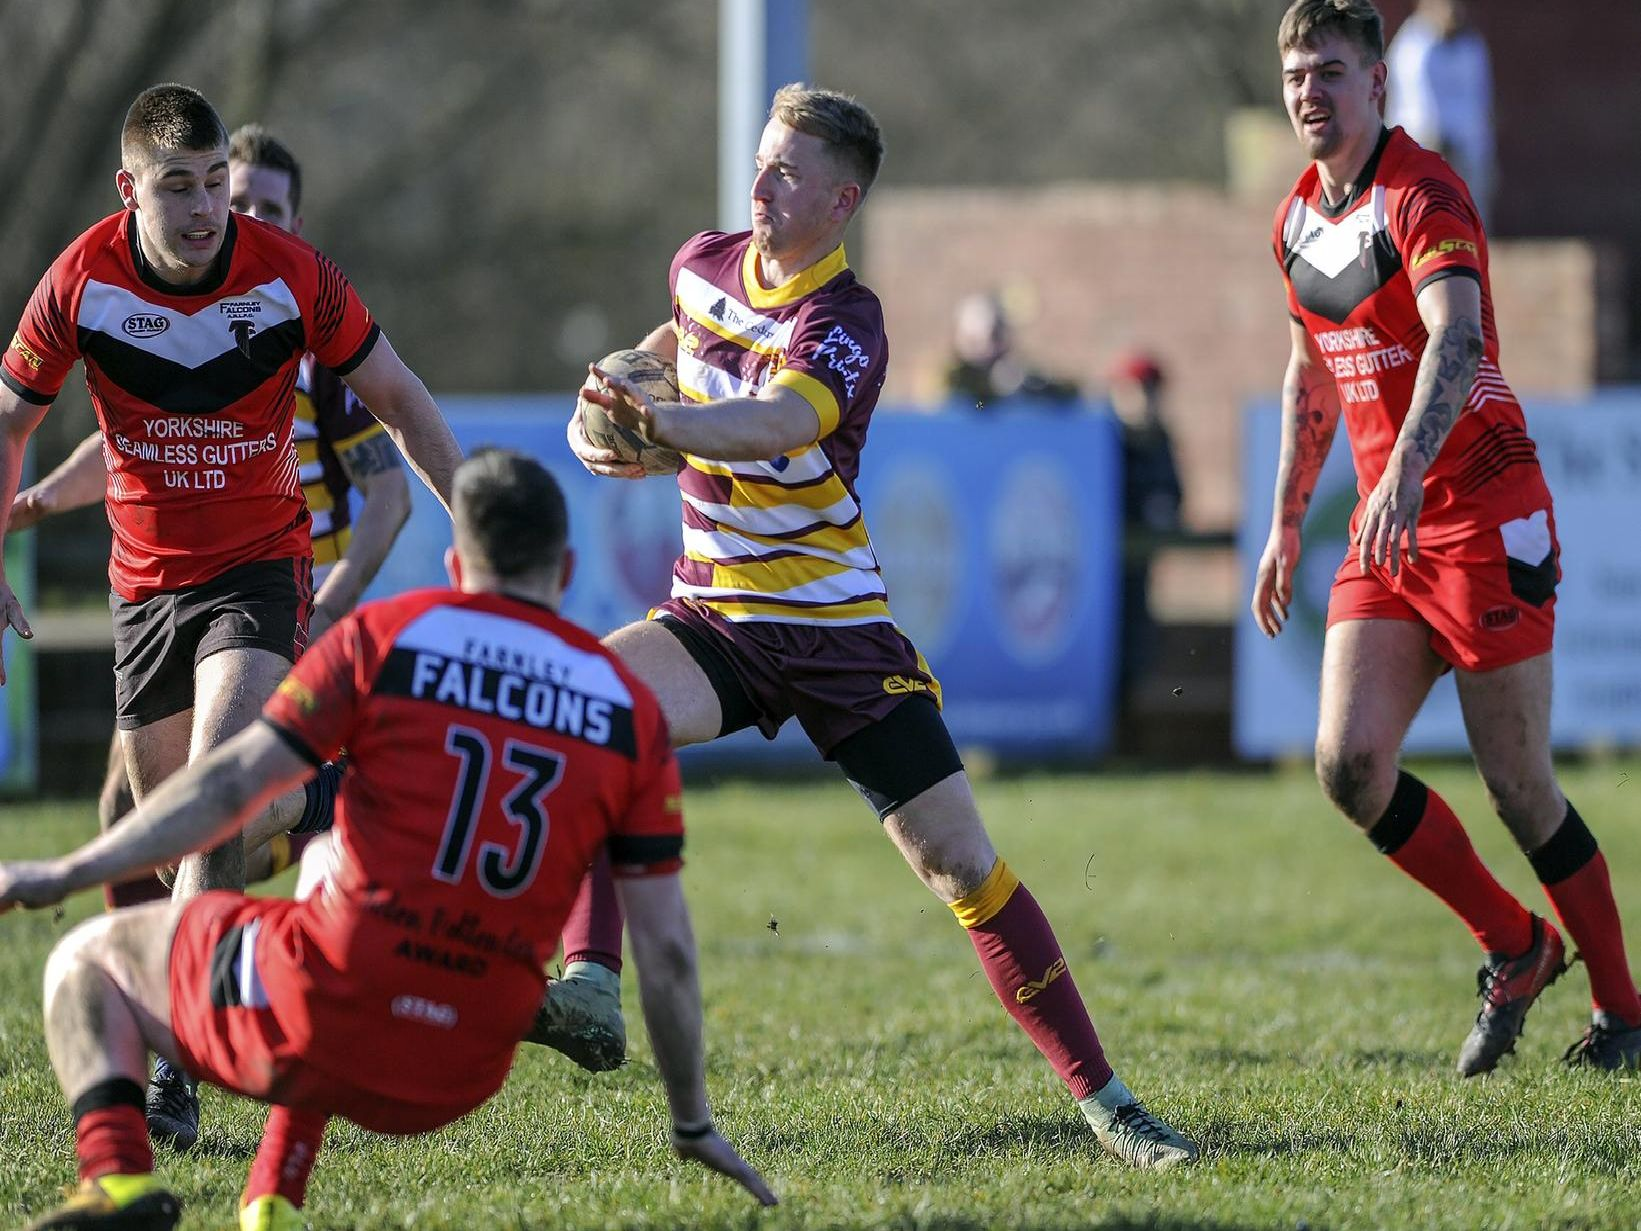 Action from Wakefield Hawks' landmark game against Farnley Falcons